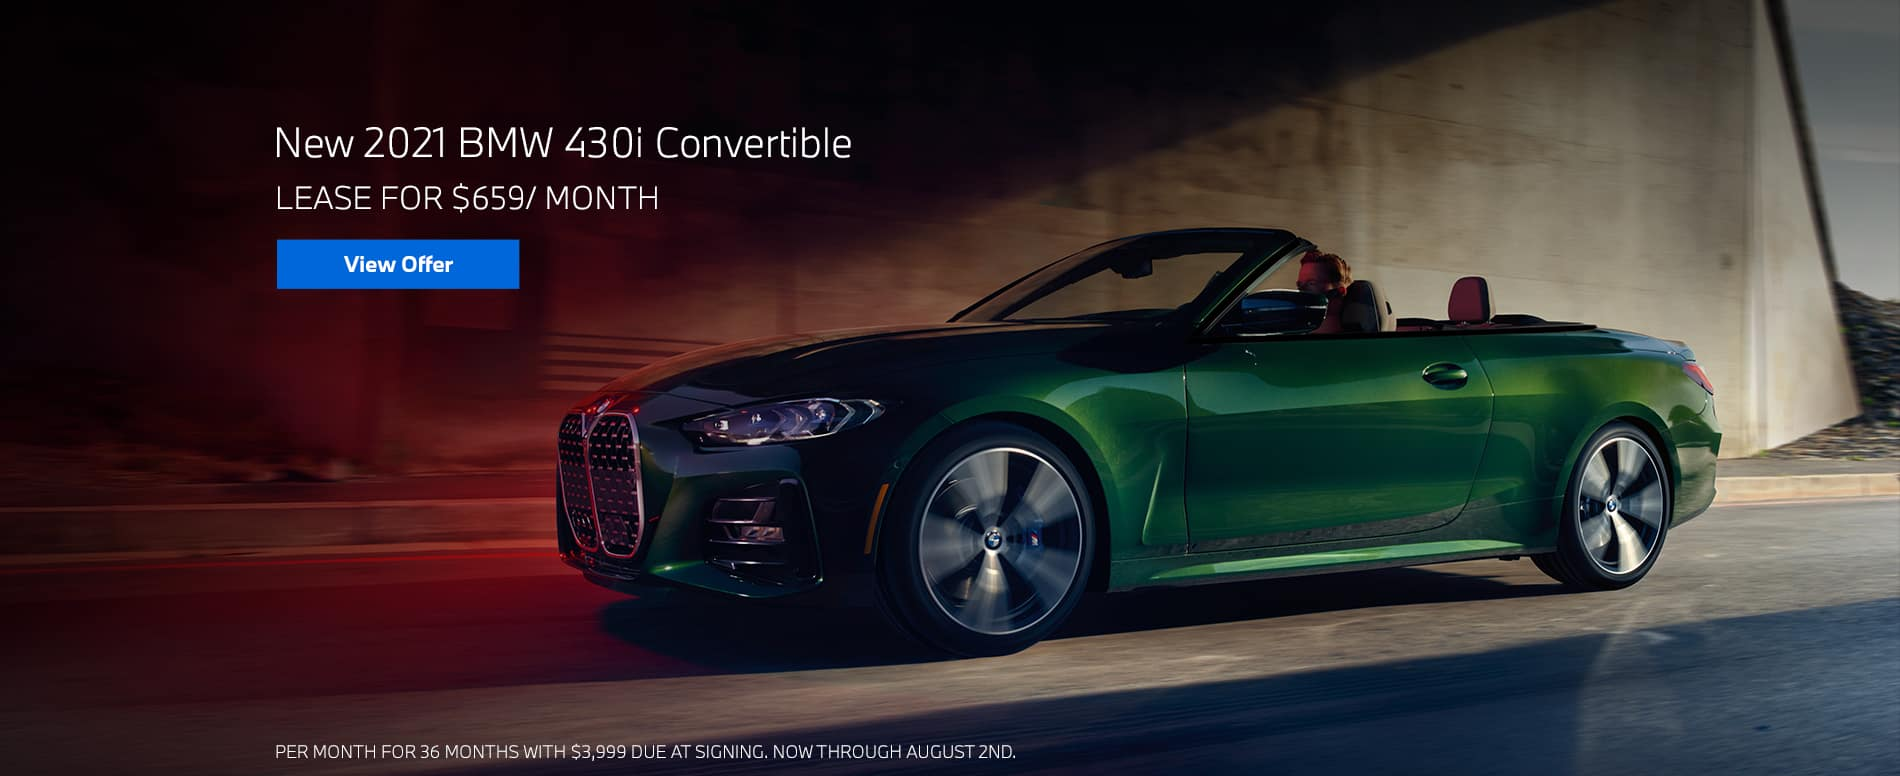 Lease a 2021 BMW 430i Convertible, $659